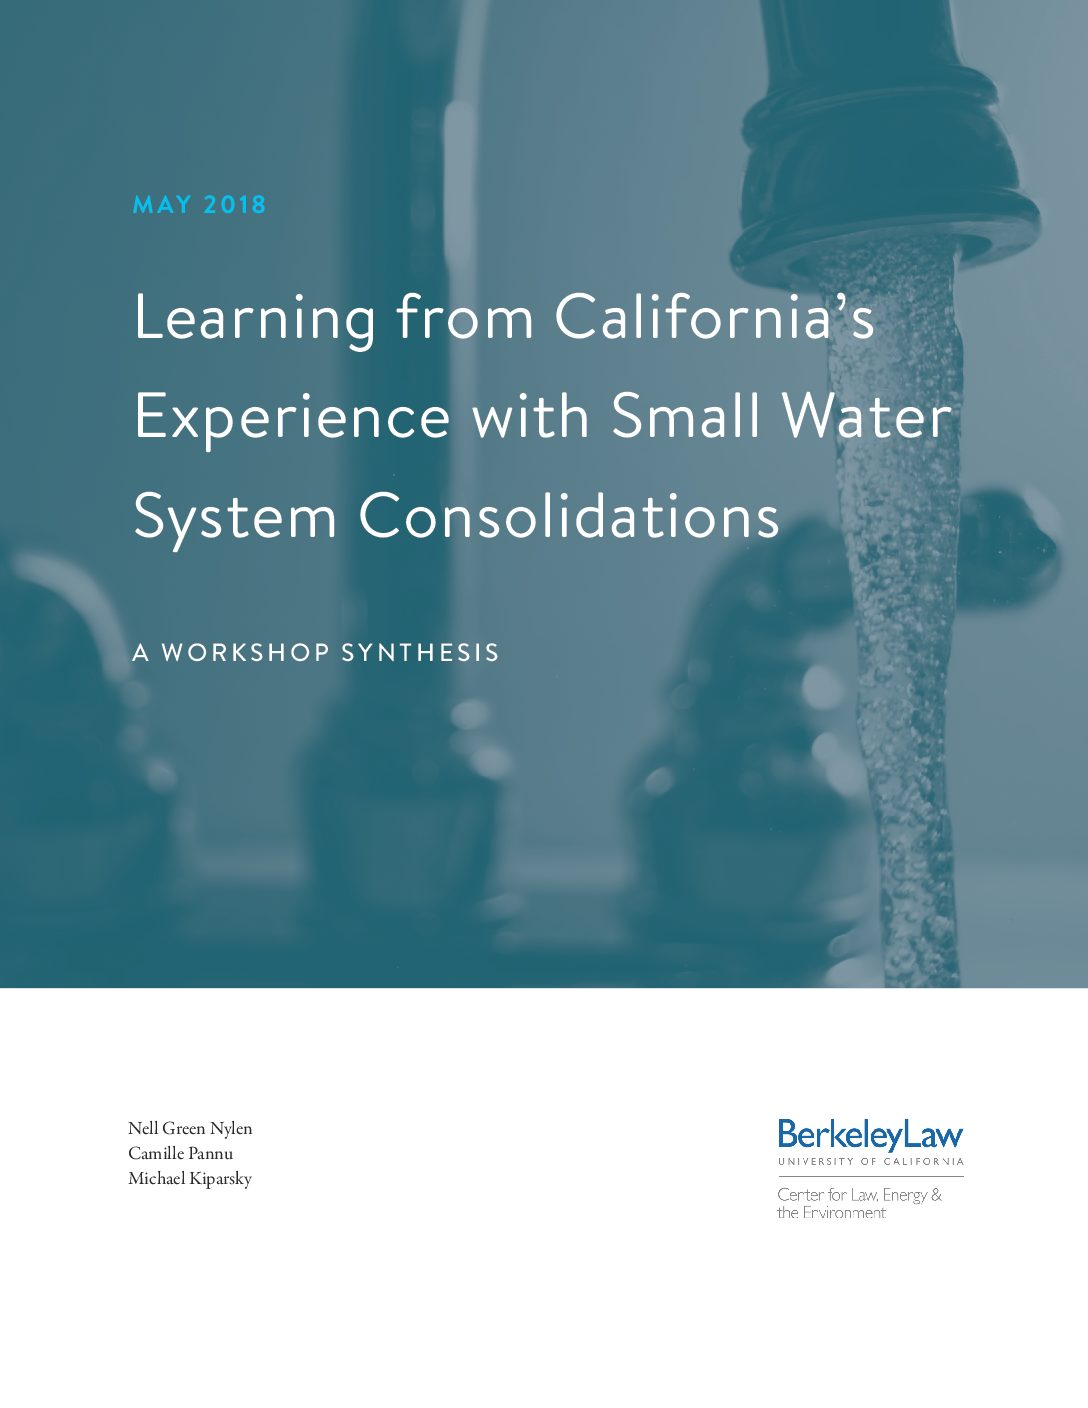 Learning from California's Experience with Small Water System Consolidations: A Workshop Synthesis